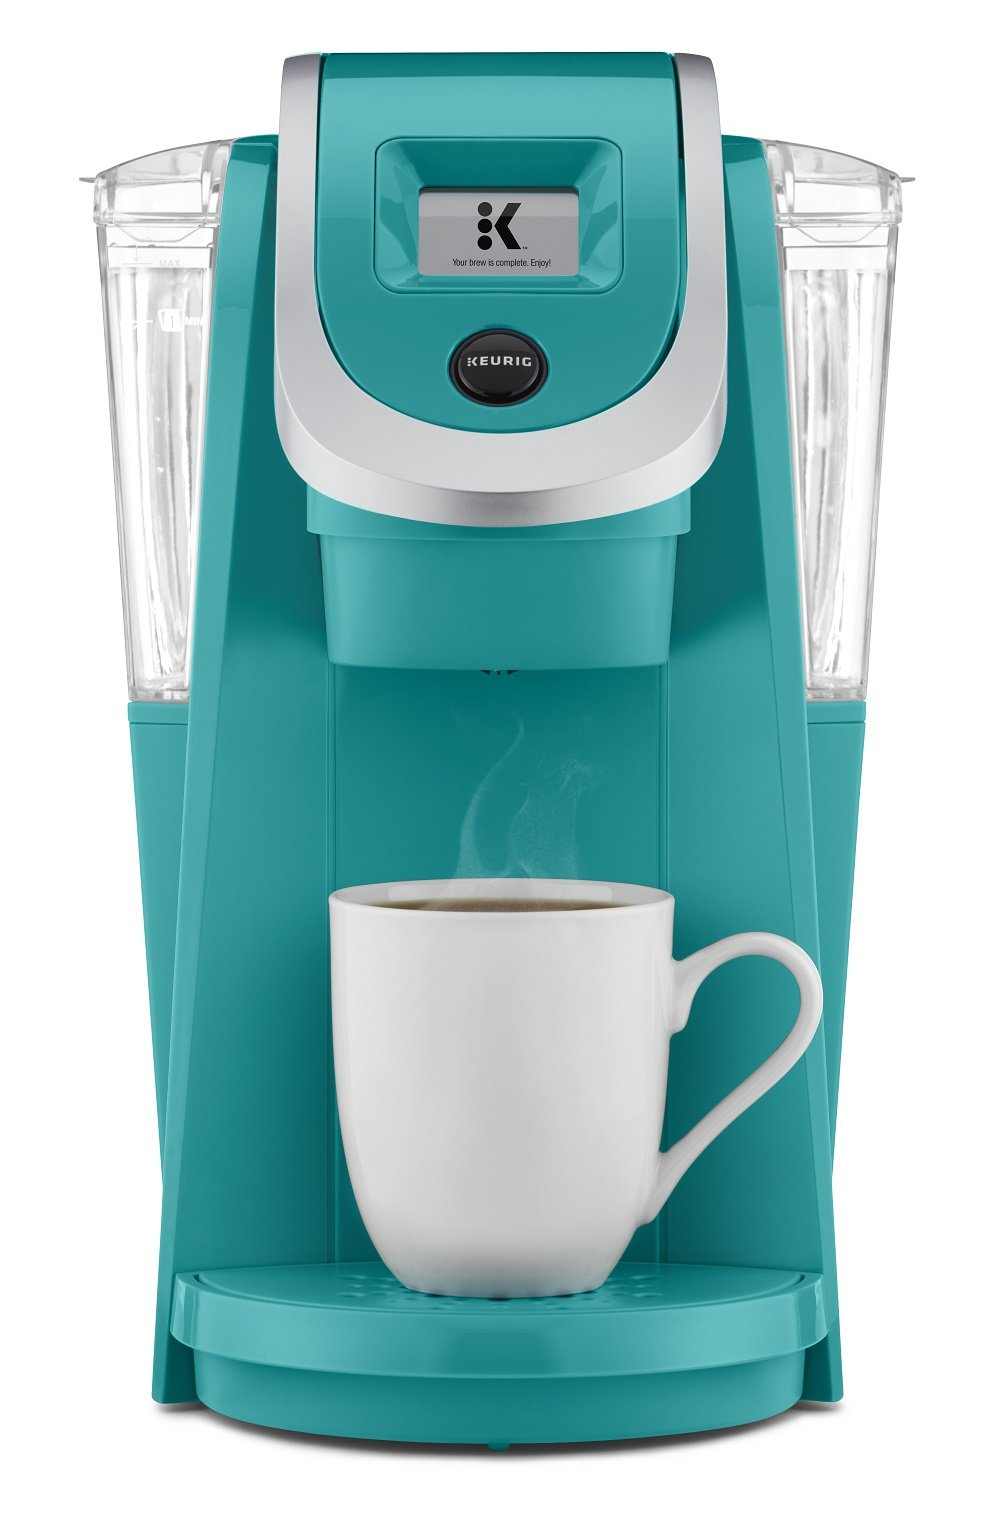 Keurig 119277 K250 Coffee Maker, Turquoise, Turquoise, Turquoise